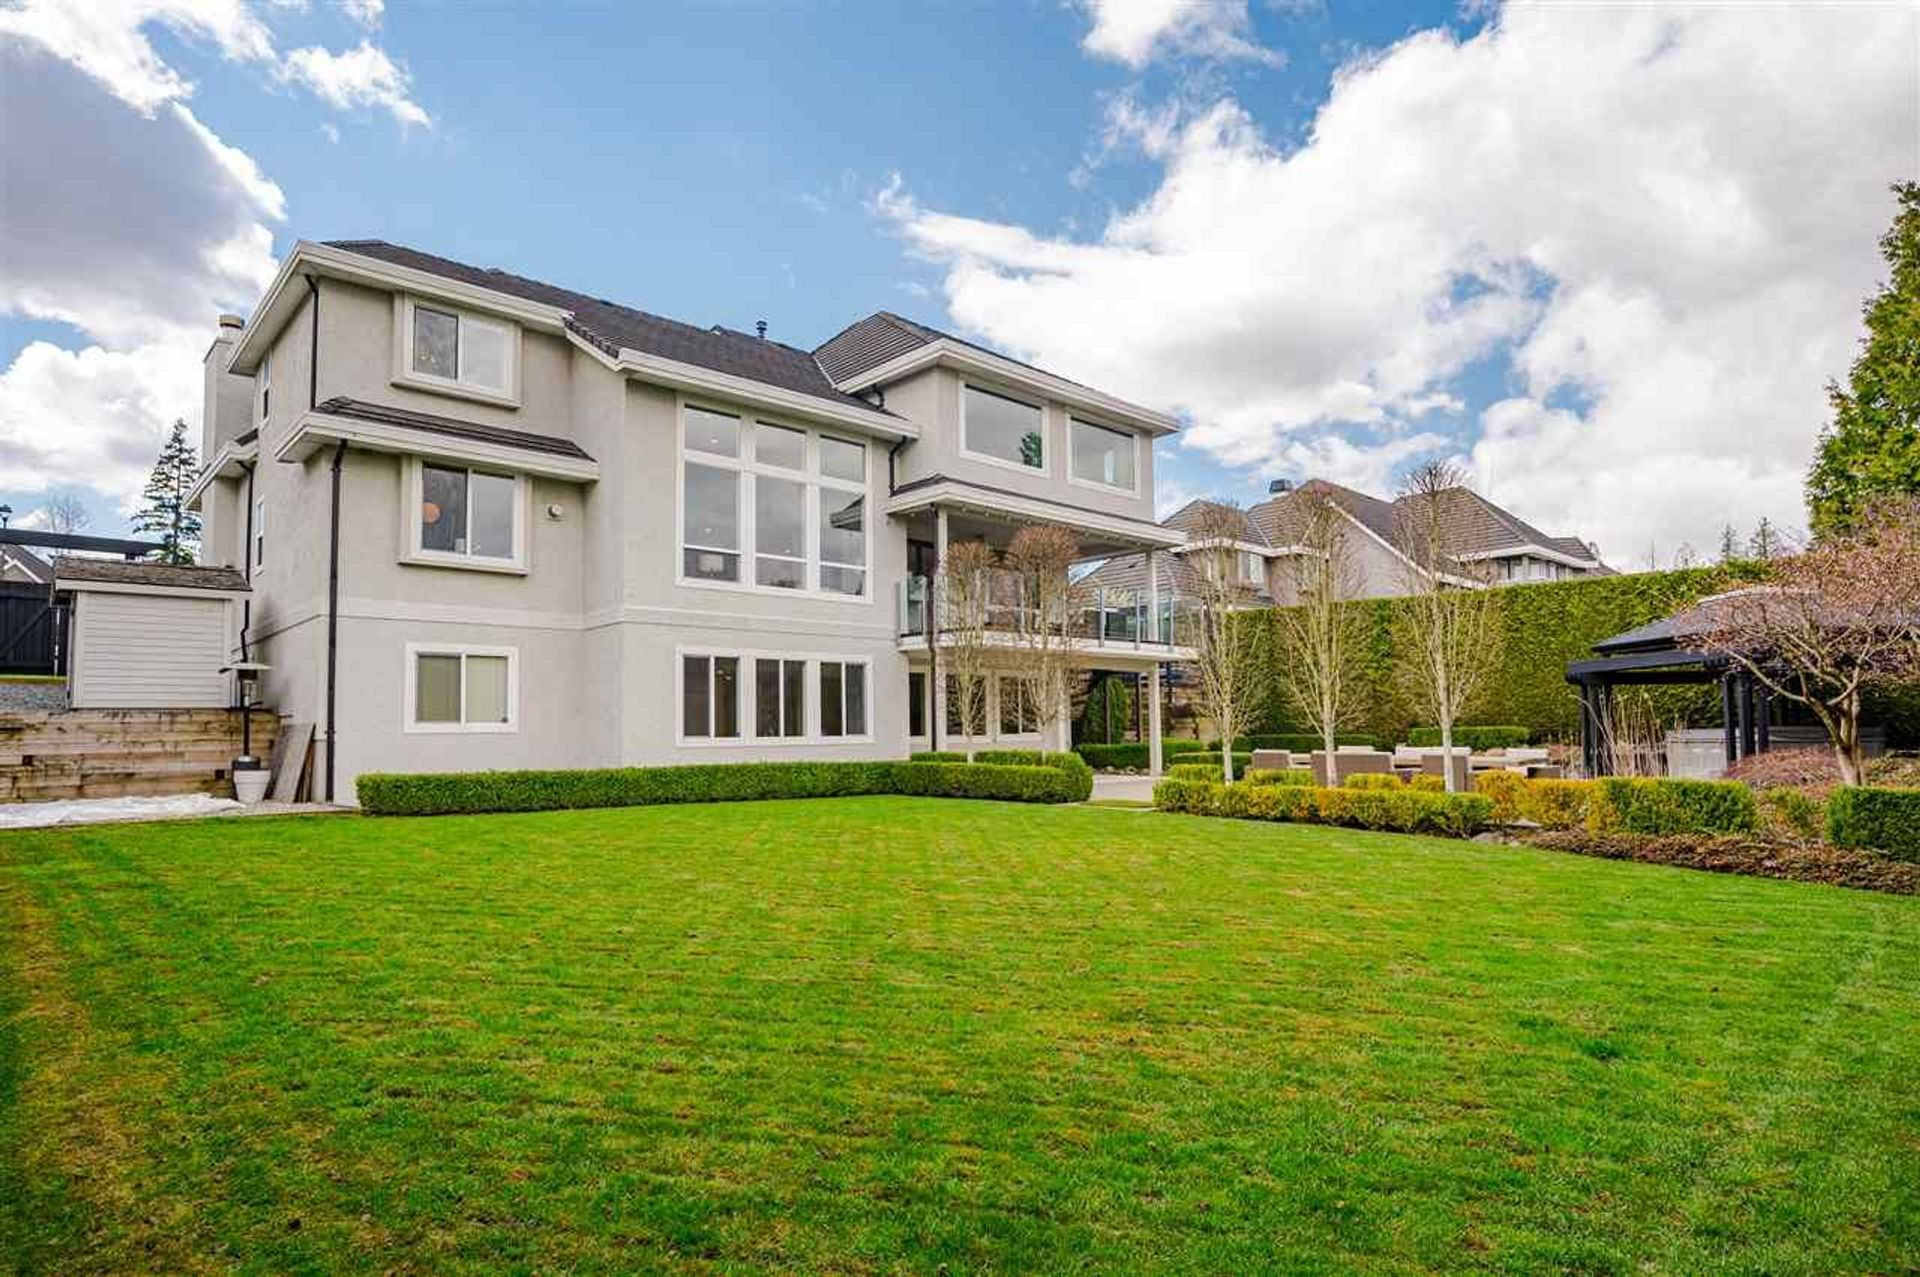 16503-111-avenue-fraser-heights-north-surrey-39 at 16503 111 Avenue, Fraser Heights, North Surrey